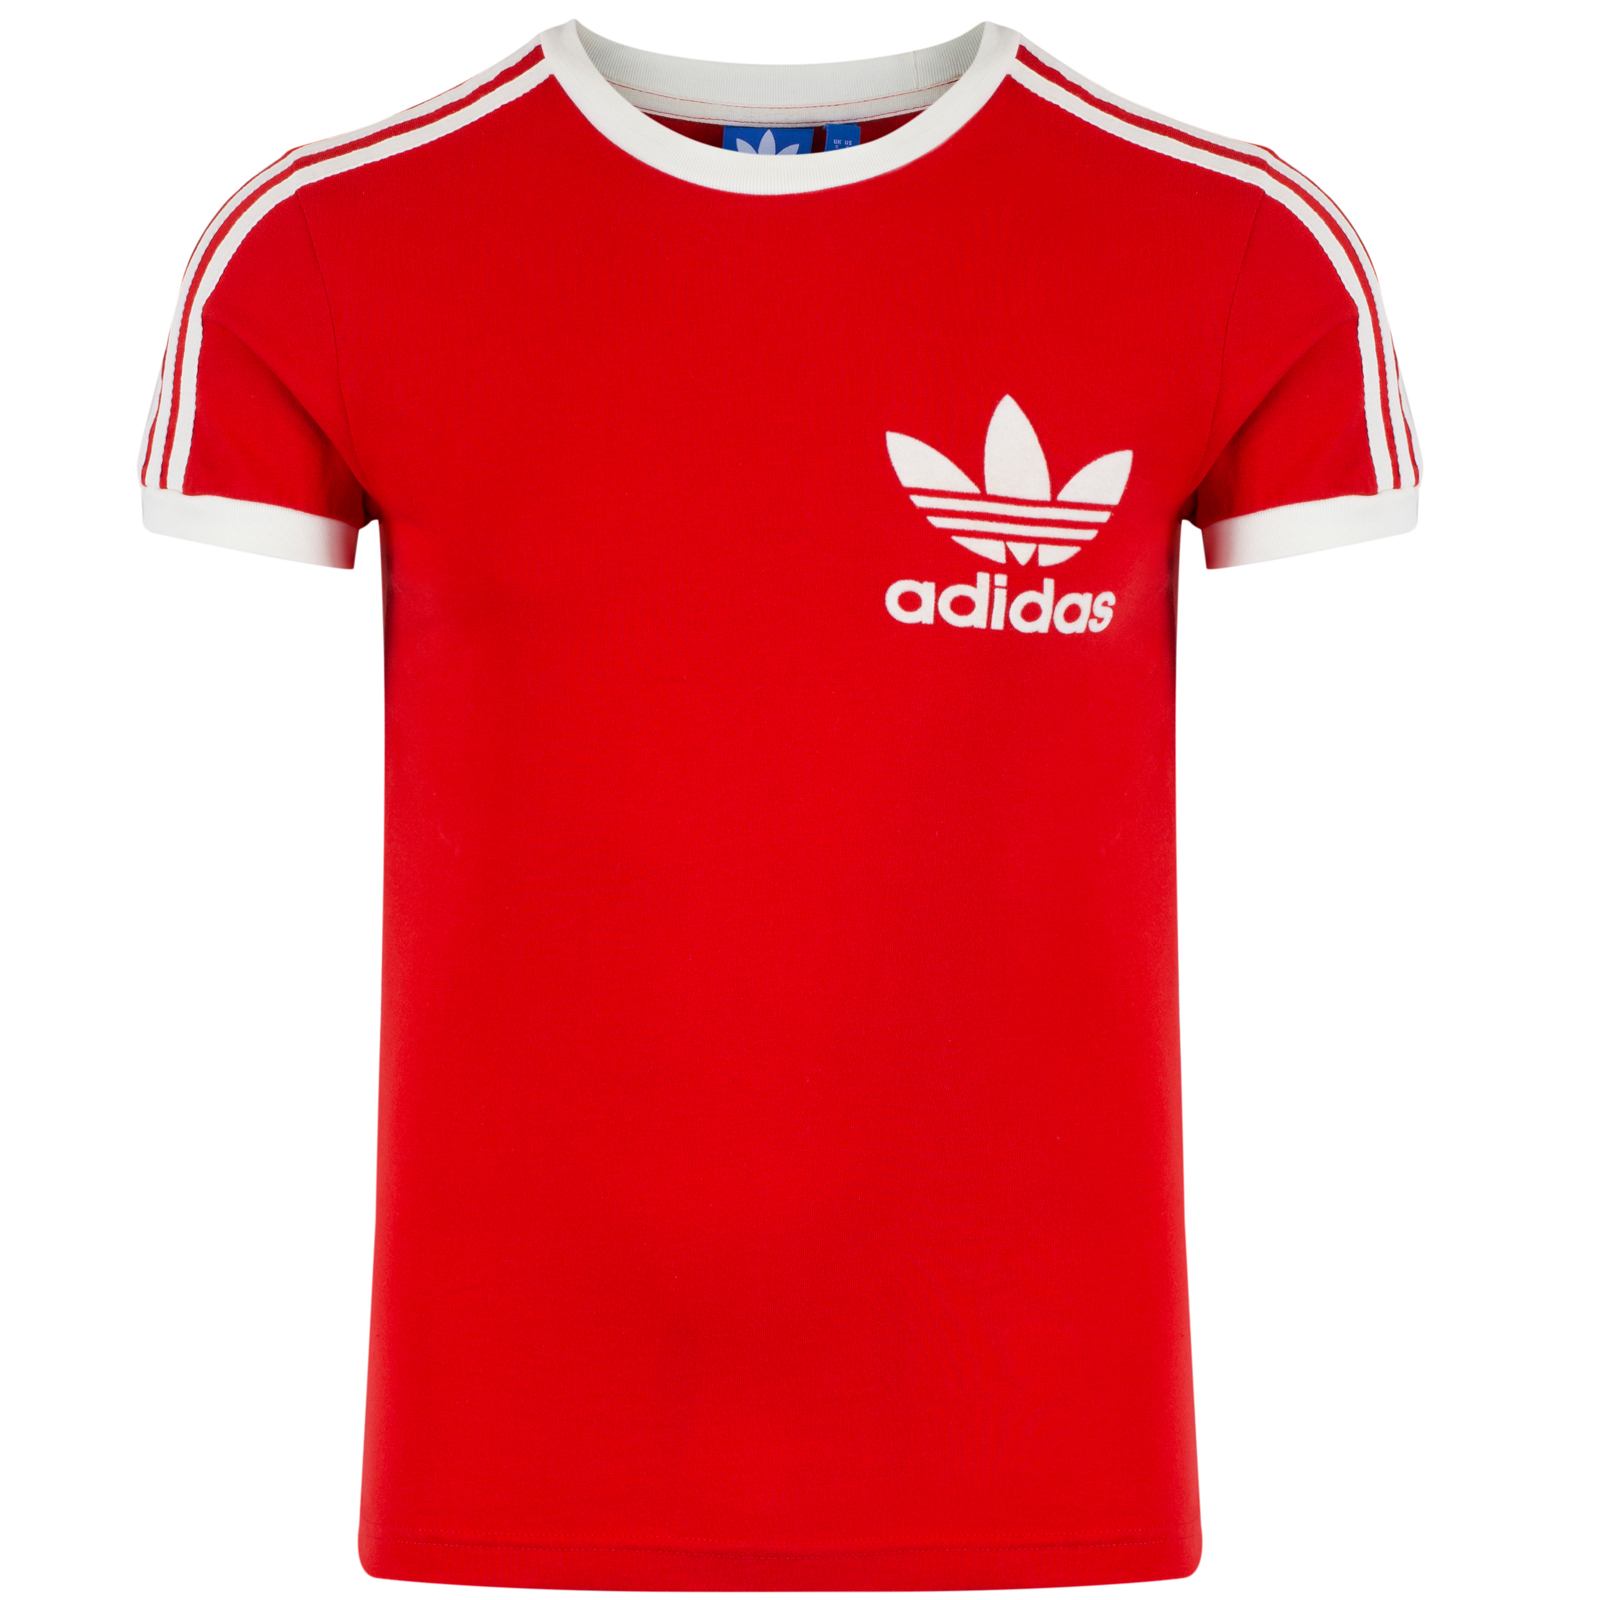 Adidas originals mens trefoil logo 3 stripe t shirt retro for Adidas lotus t shirt